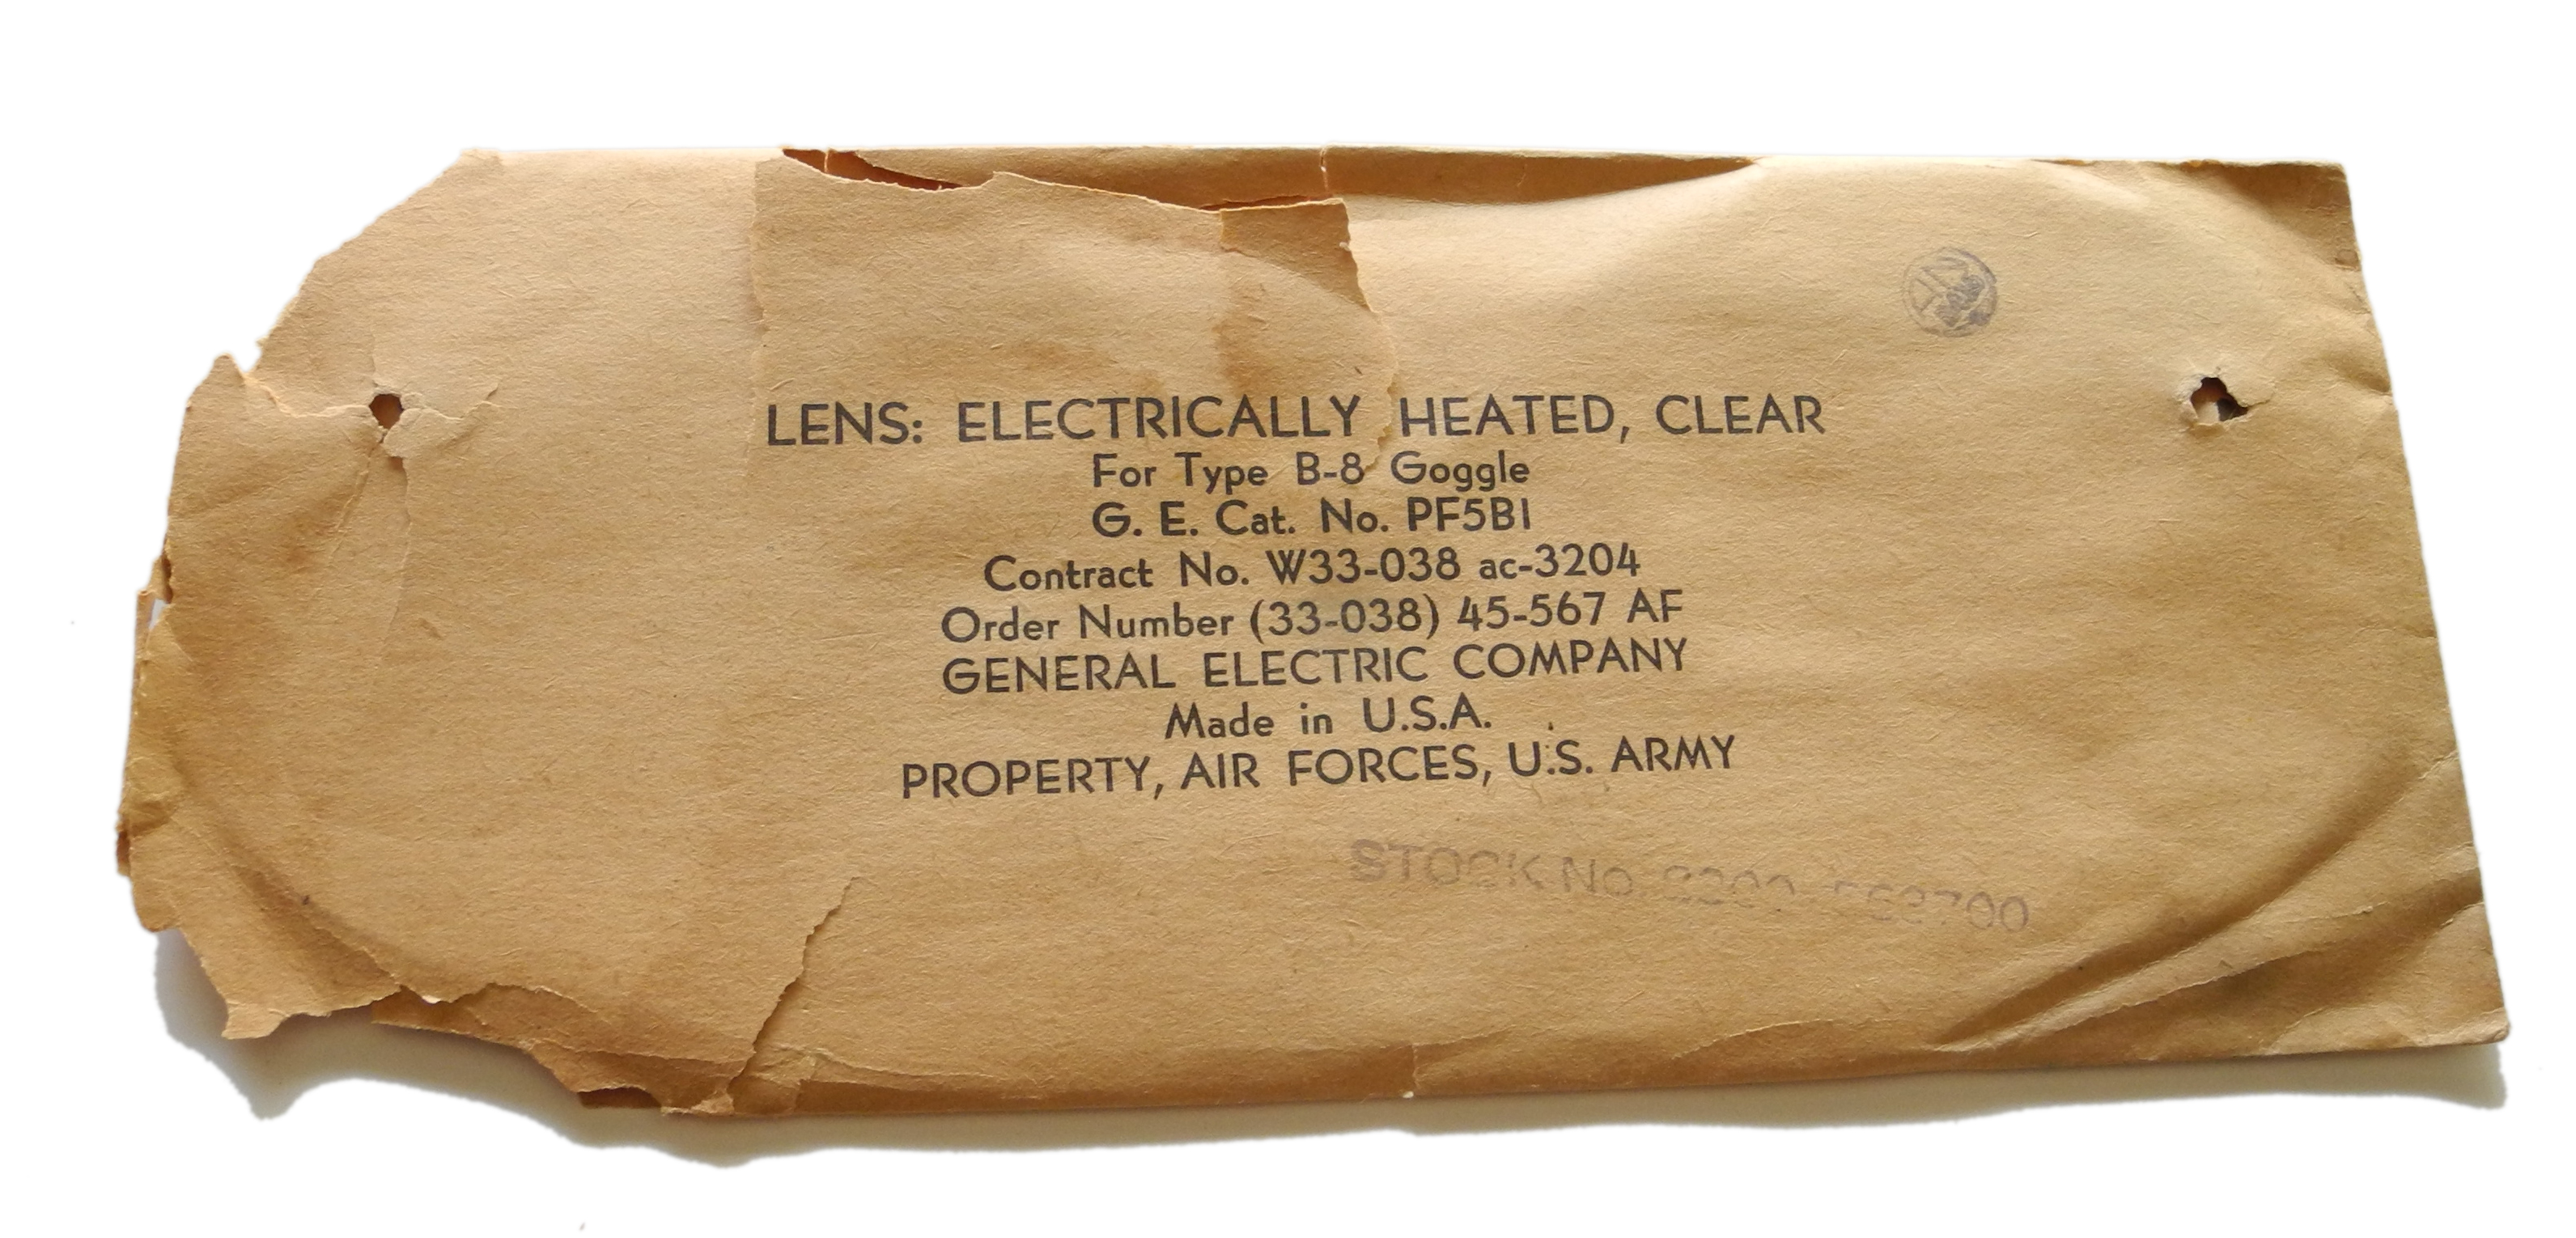 AAF B-8 electrically heated lens